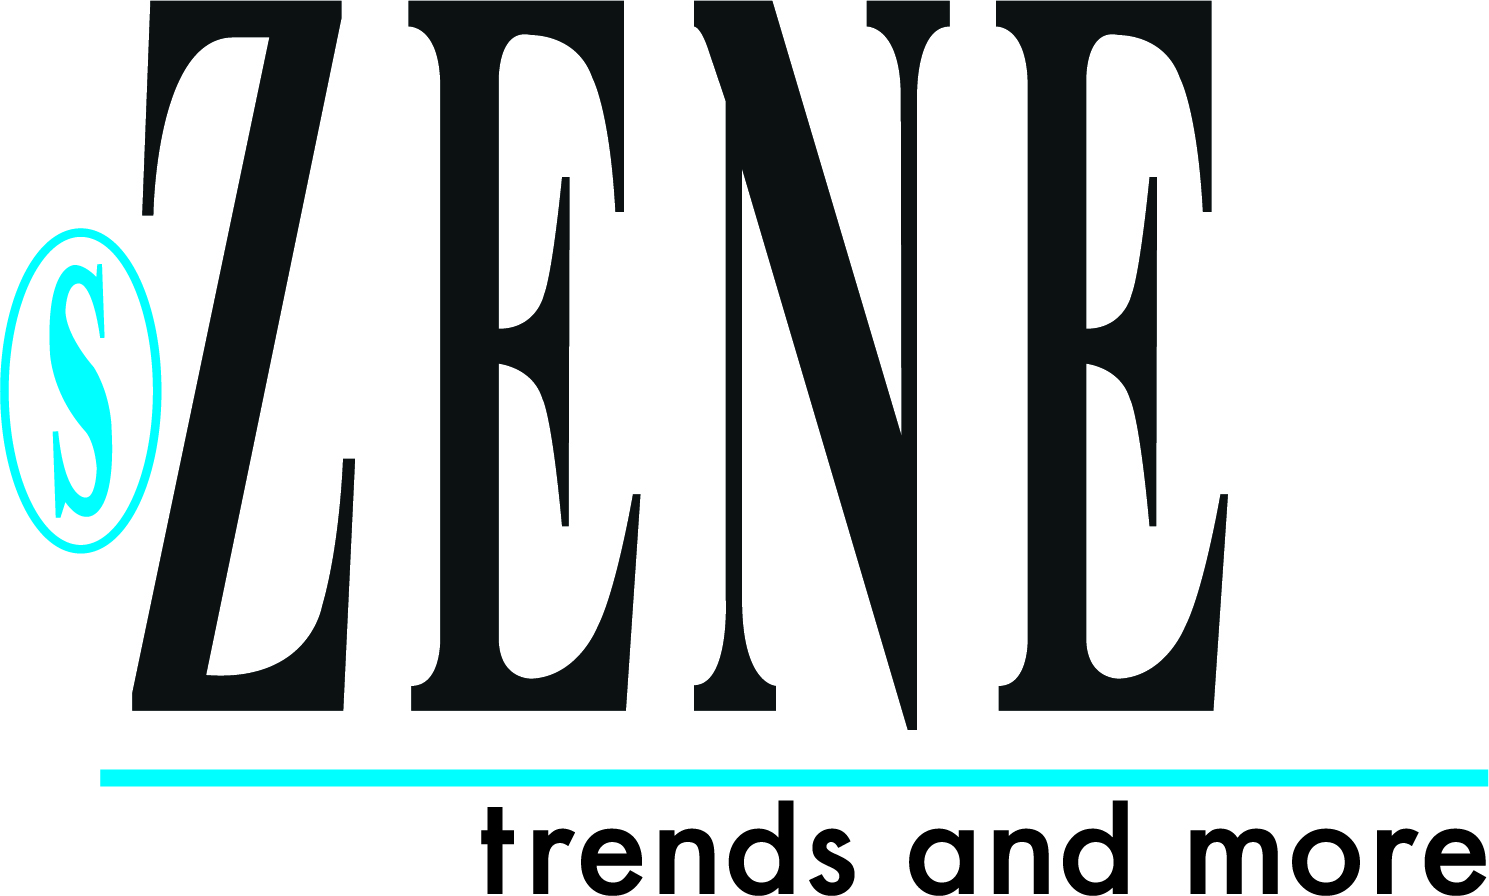 sZene - trends and more